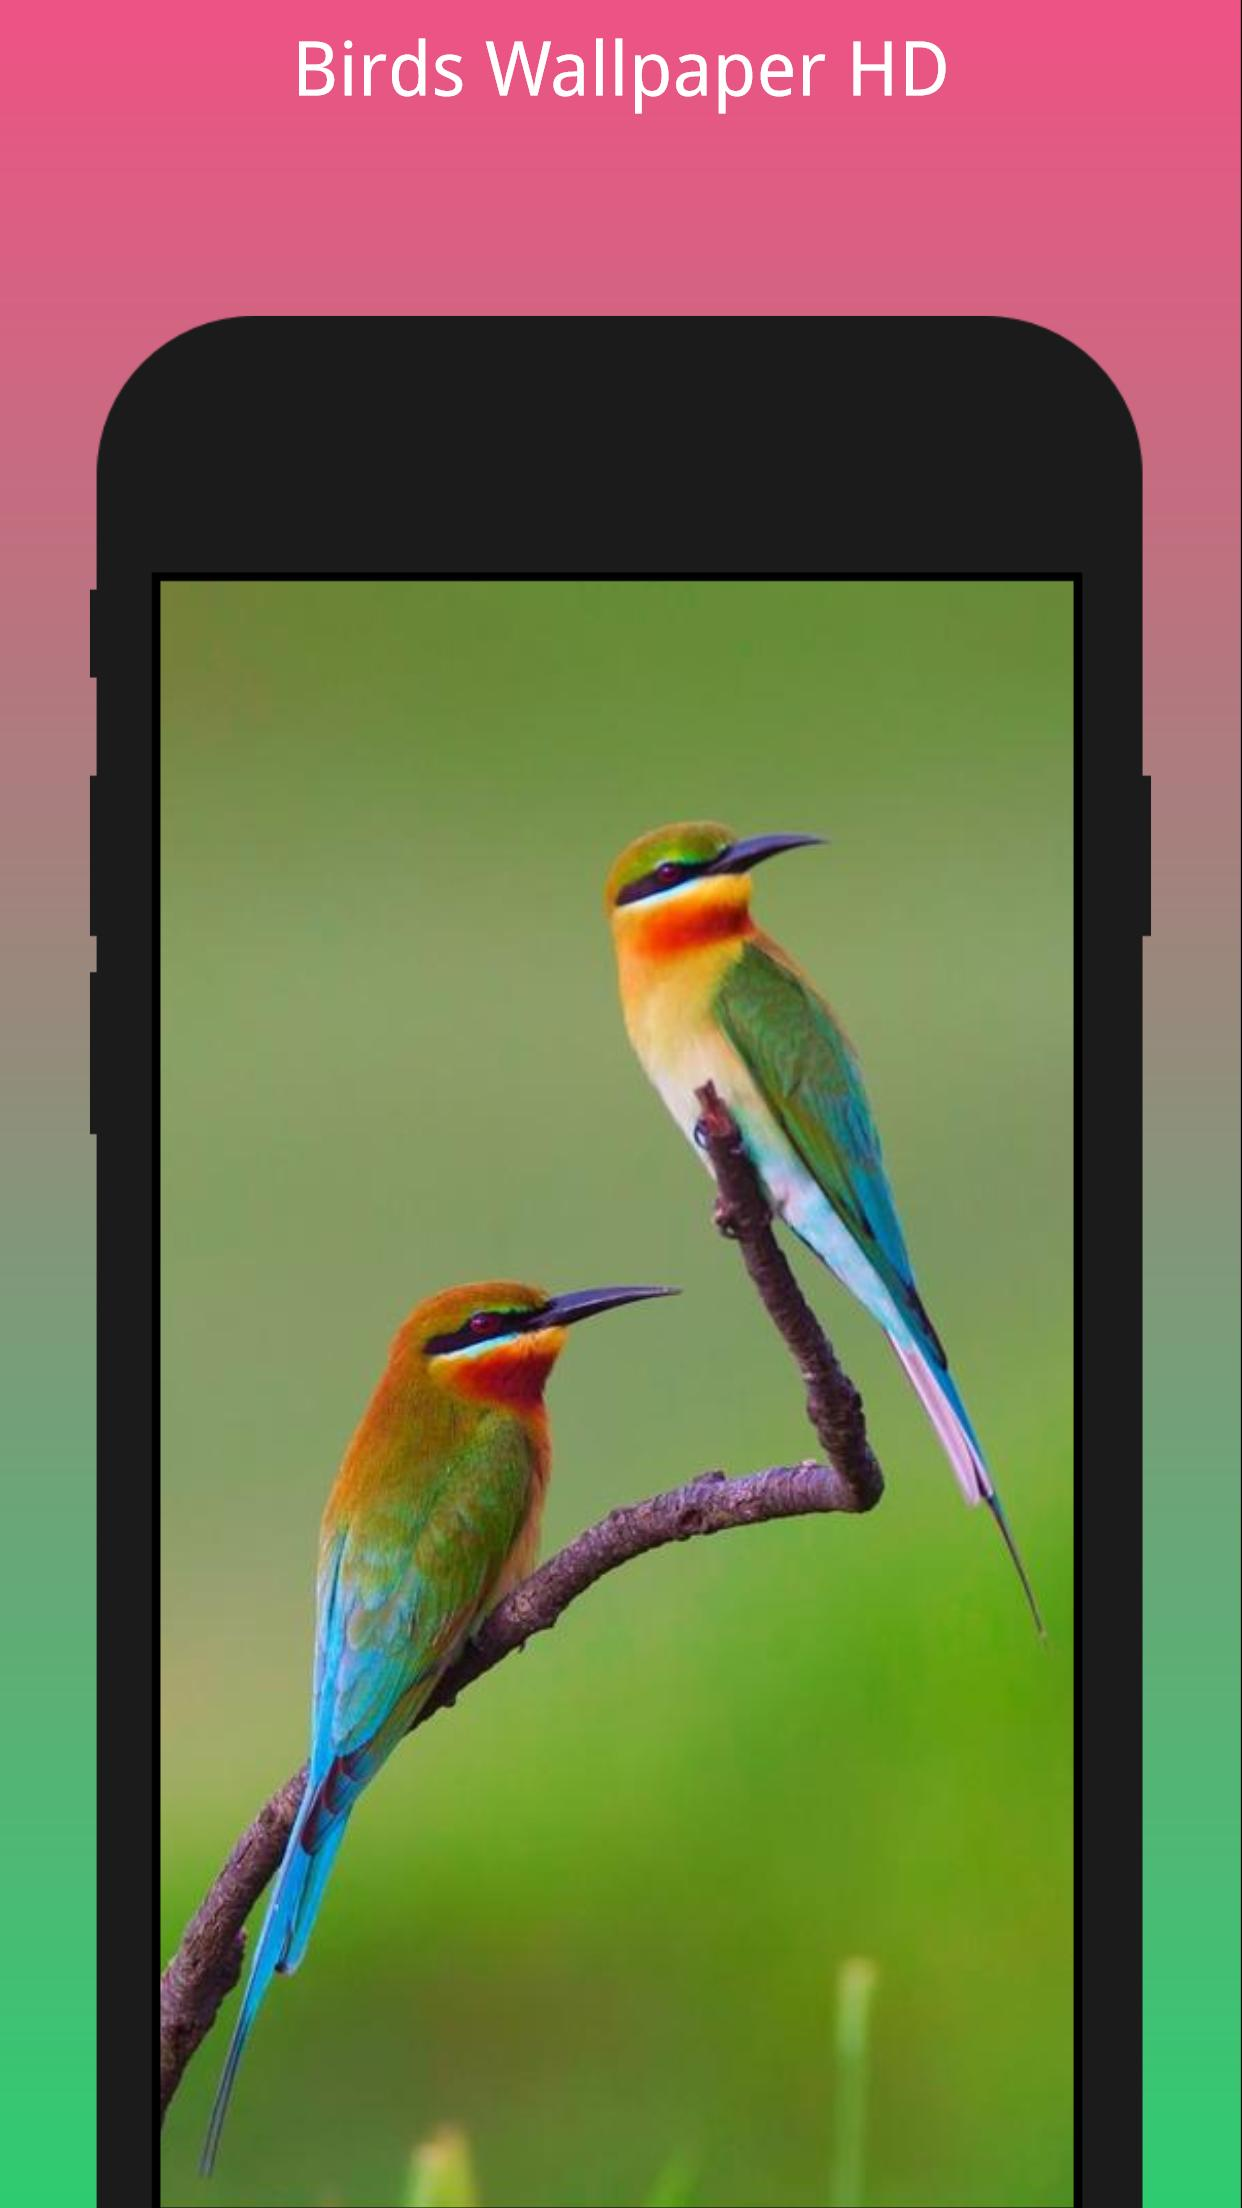 Hd Best Birds Wallpaper 4k Mobile Themes For Android Apk Download